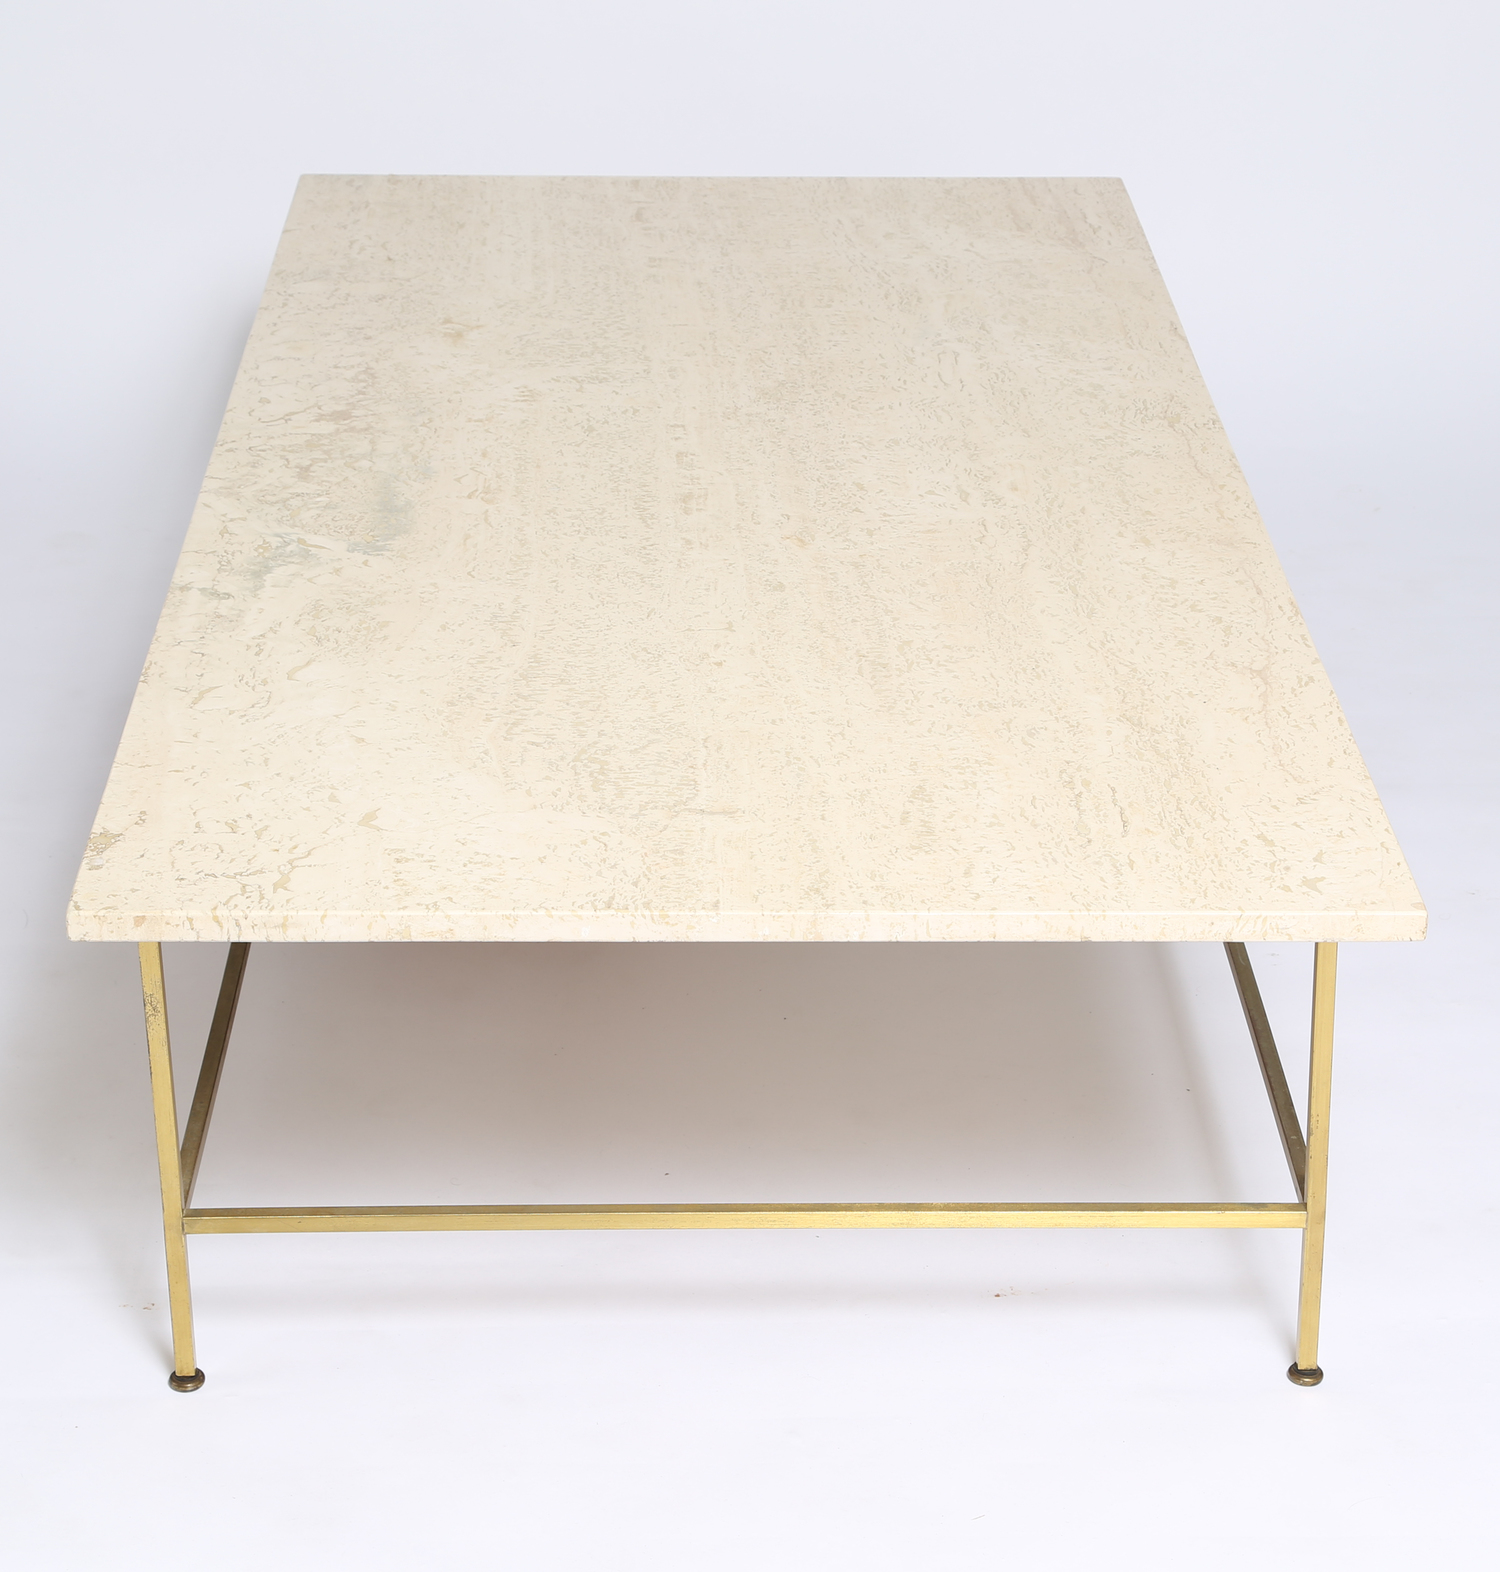 Paul McCobb travertine coffee table — Full Circle Modern